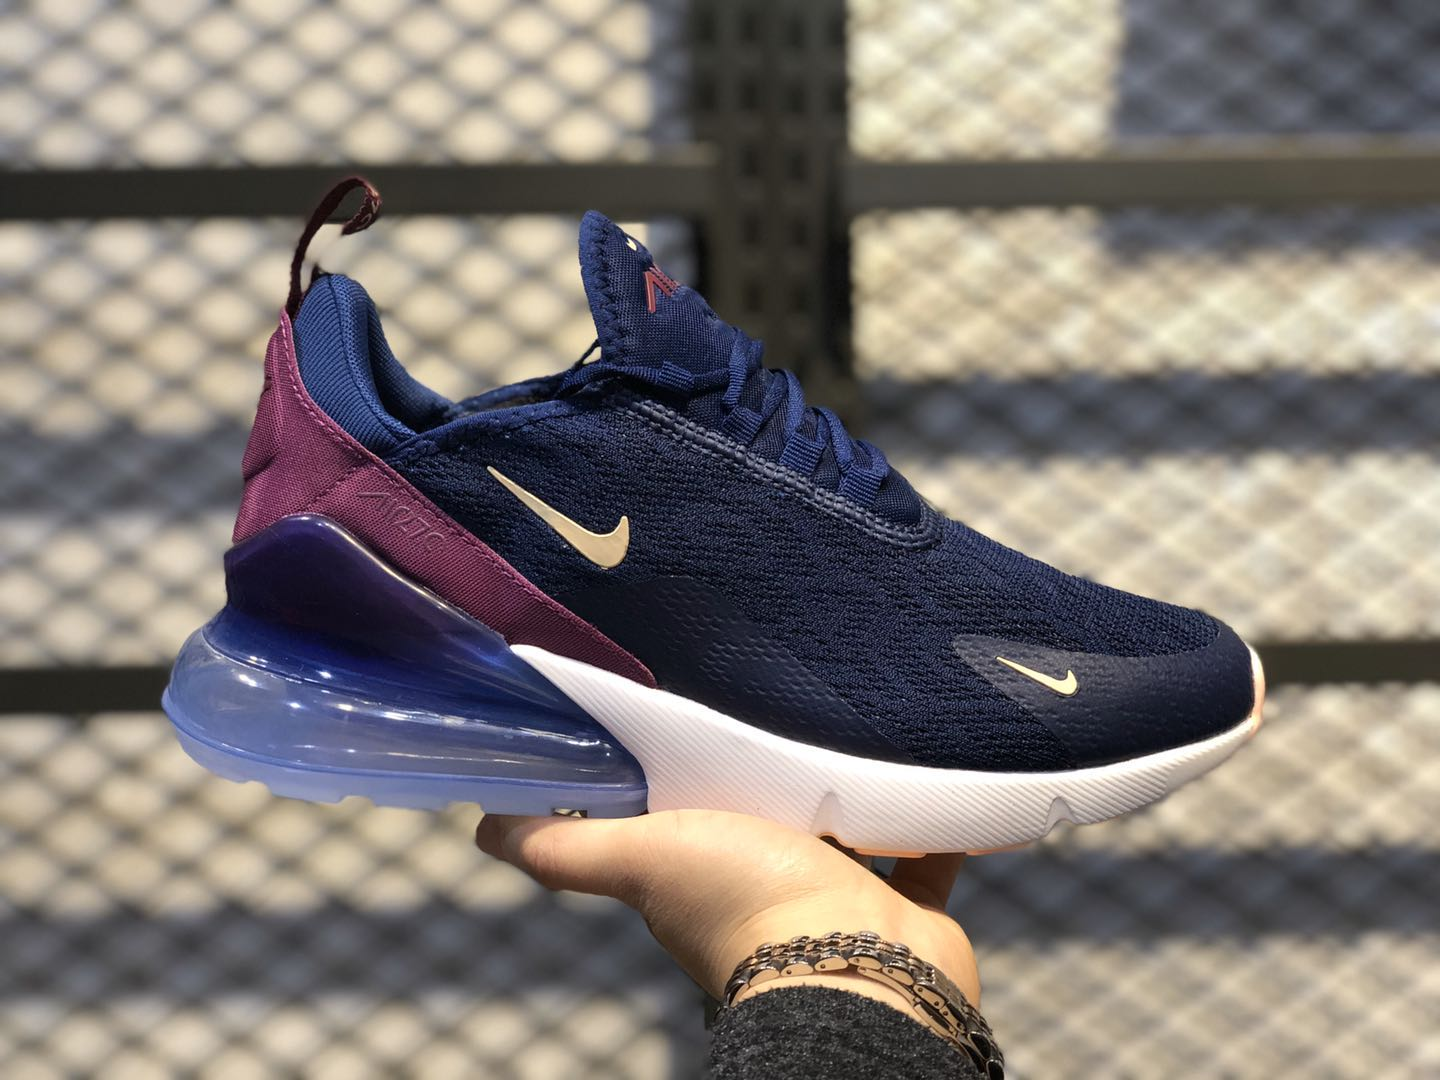 Nike Air Max 270 Wmns Navy Blue/Purple For Sale AH6789-402